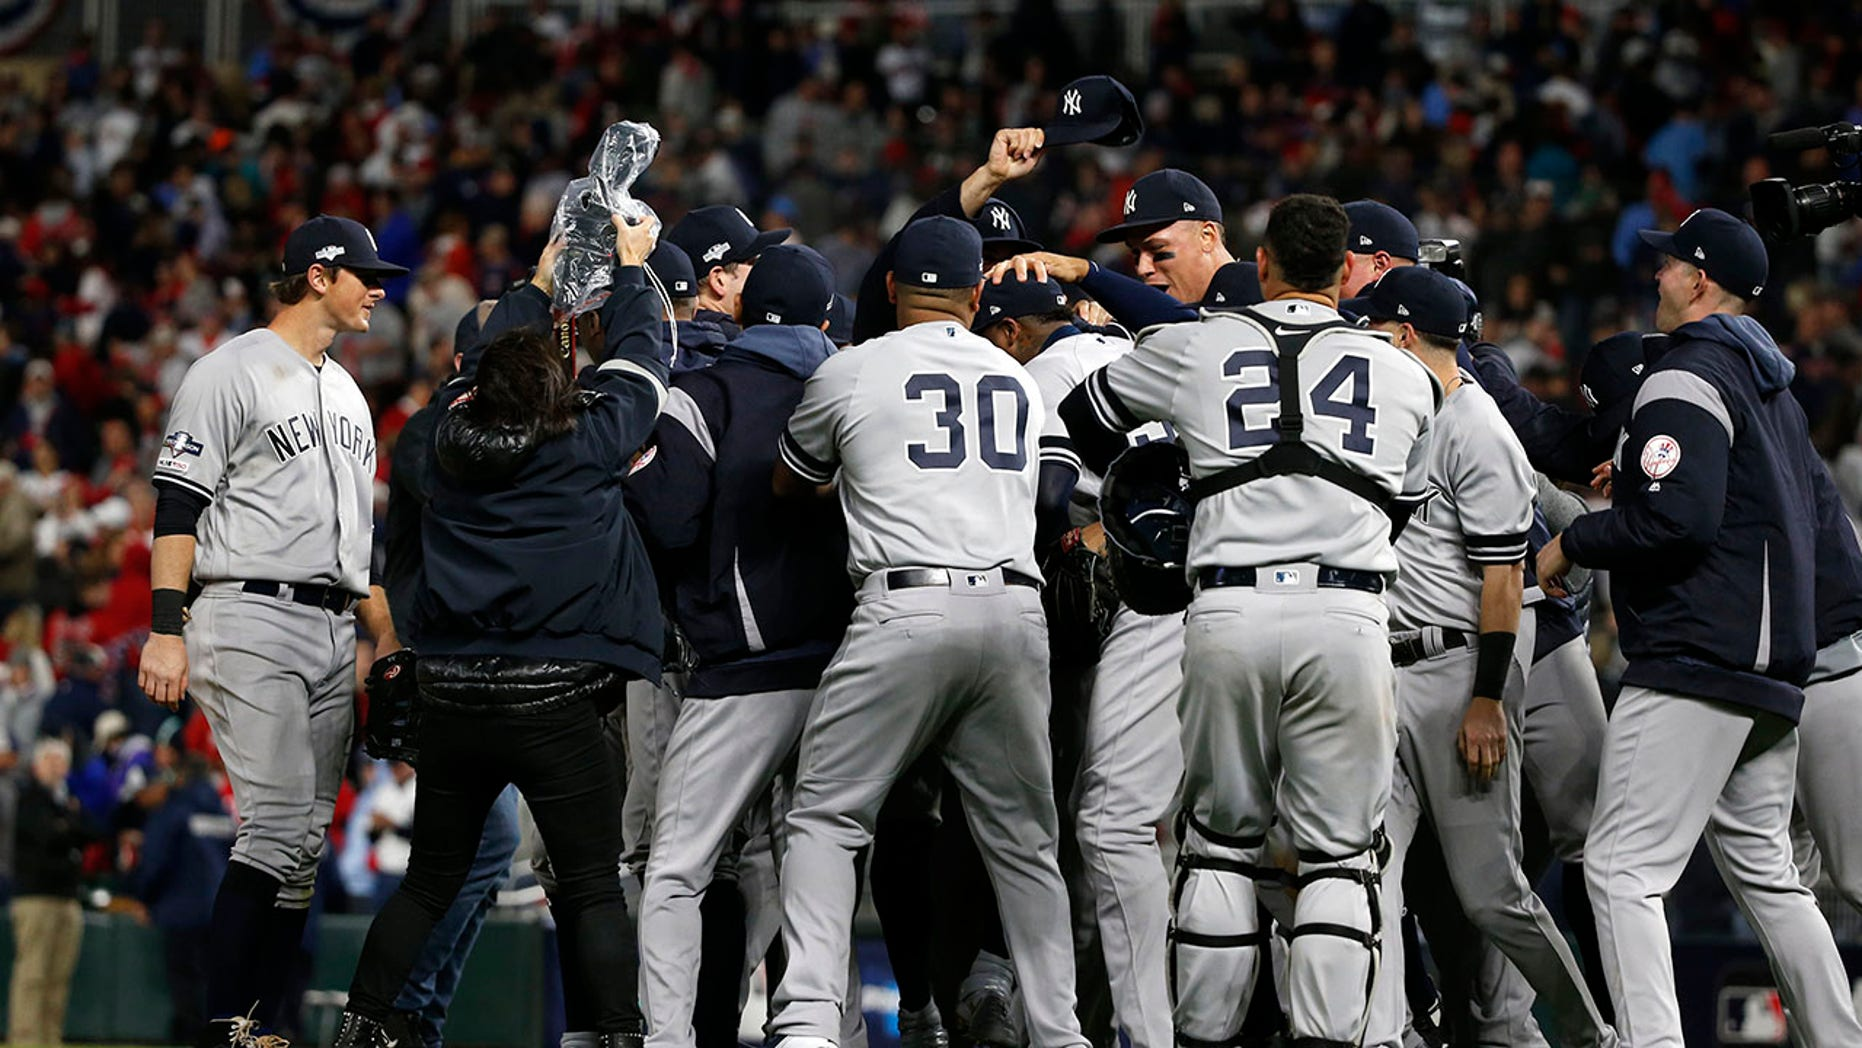 New York Yankees complete play...